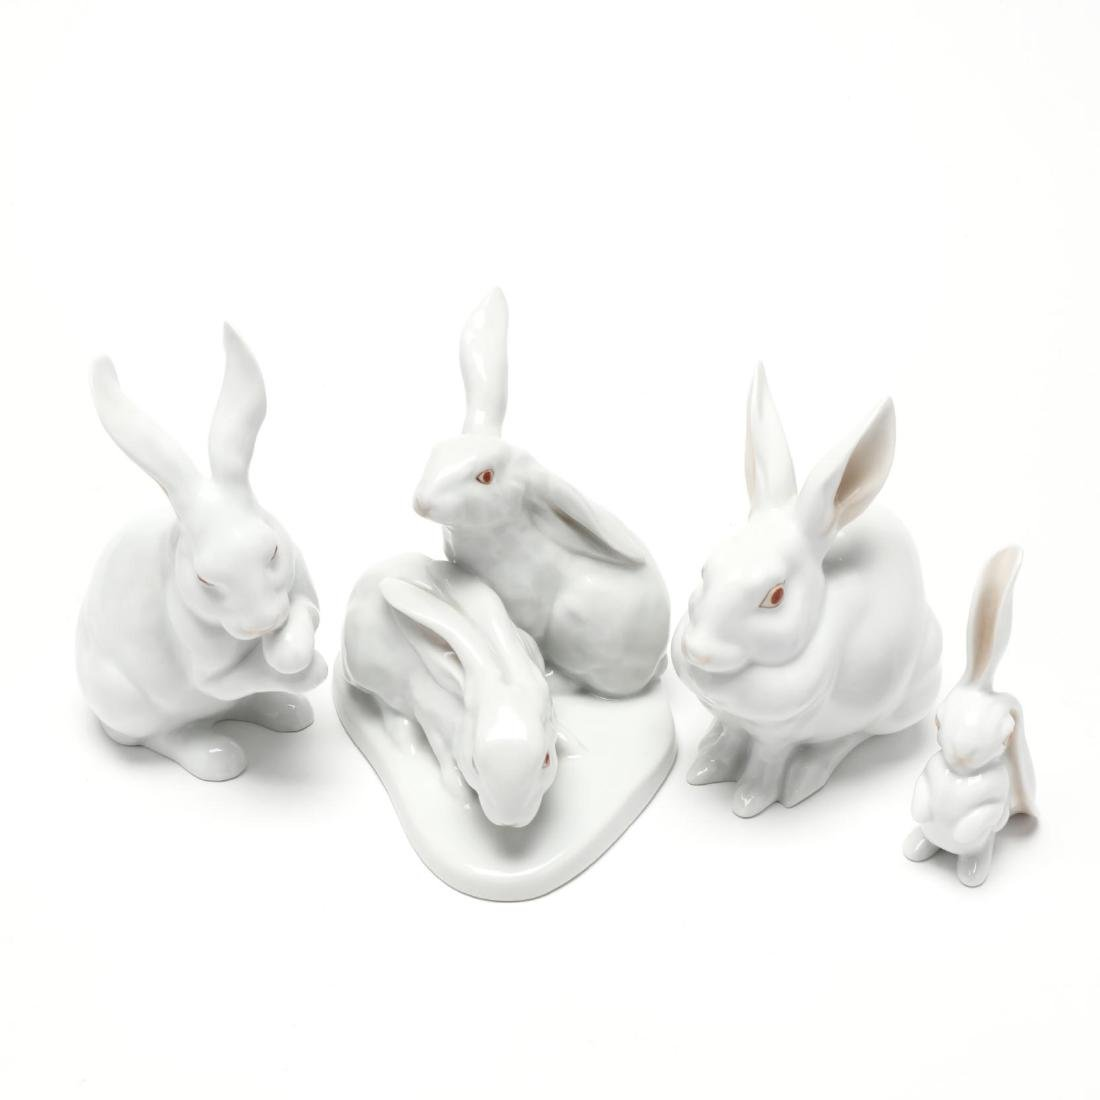 Four Herend Natural Porcelain Rabbits - 5